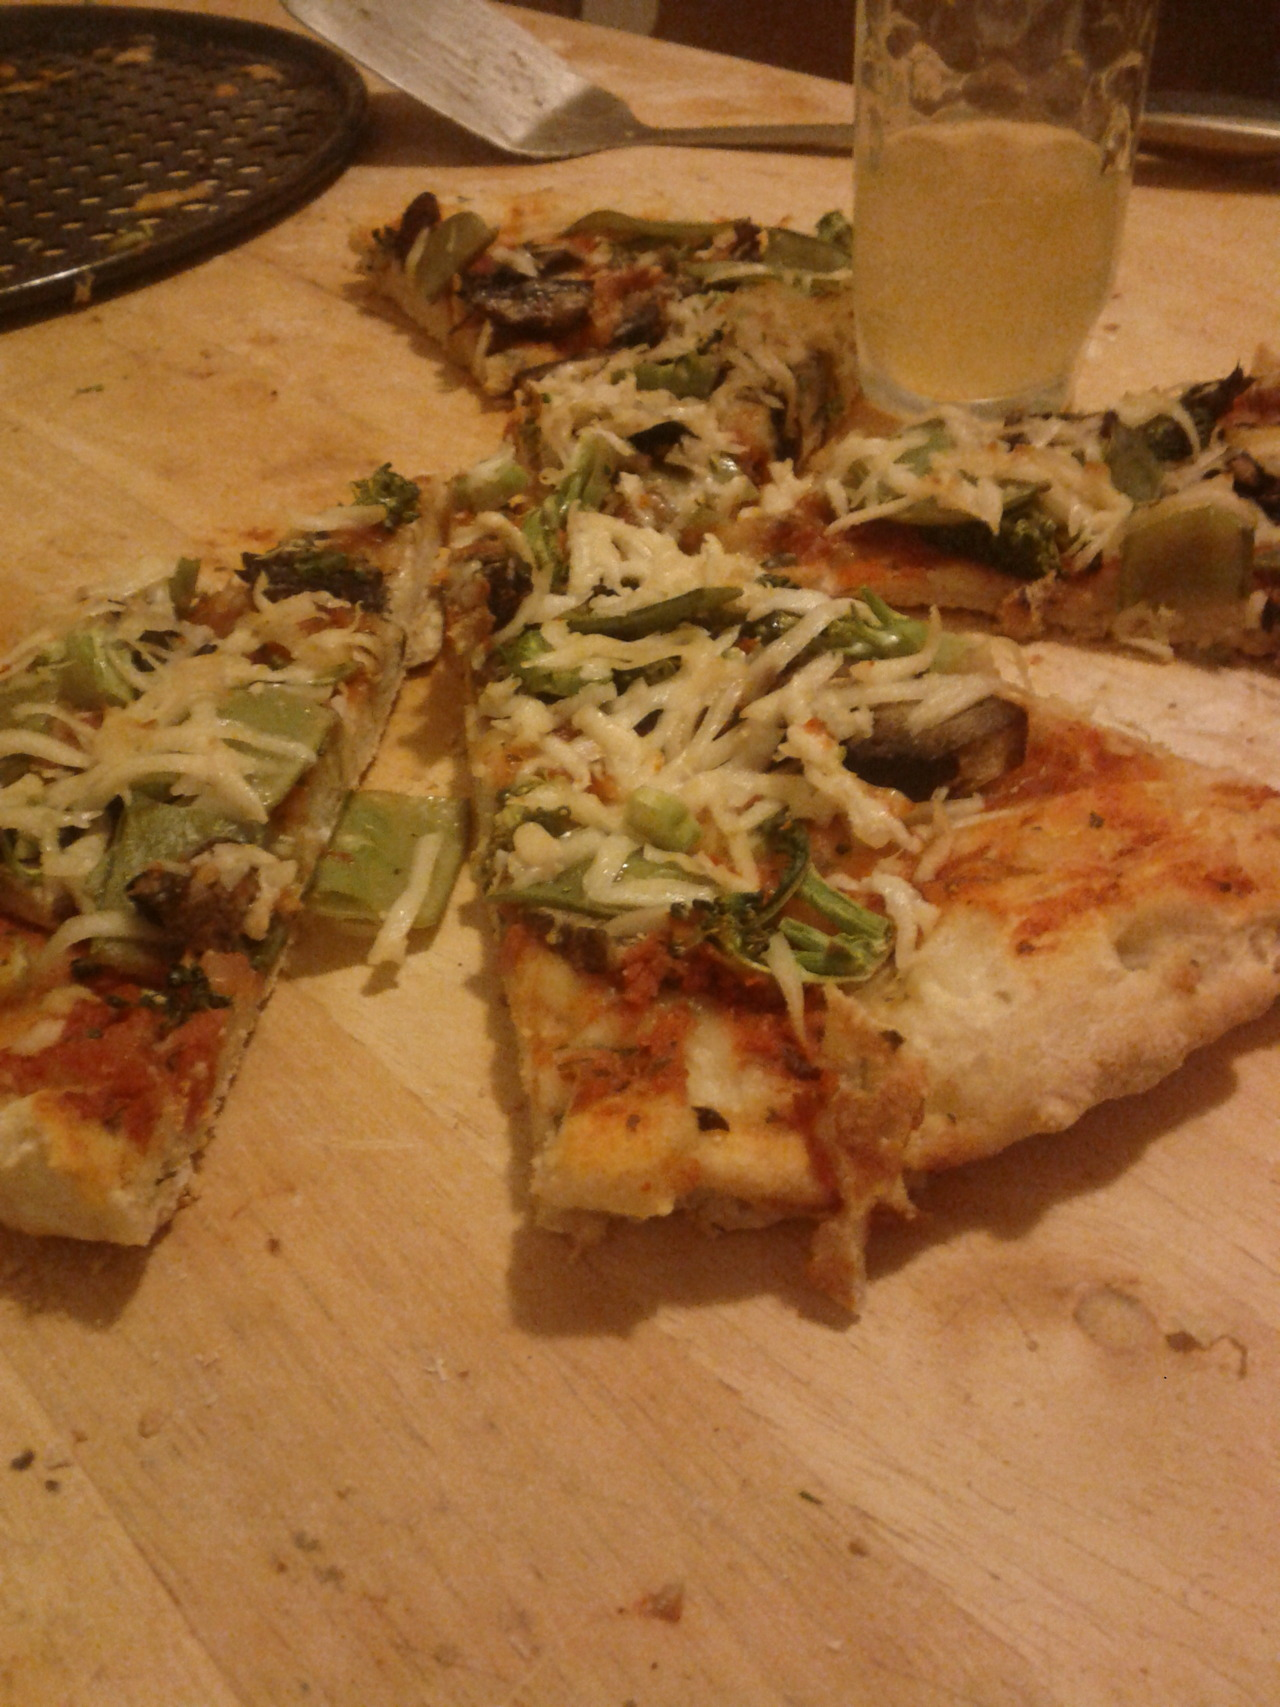 vegan pizza! harvested some dill from my front stoop container garden for the crust, used basil and sun dried tomato marinara for sauce, added portobello mushroom, broccoli and snow peas, then topped it off with Follow Your Heart vegan cheesee! YUM!